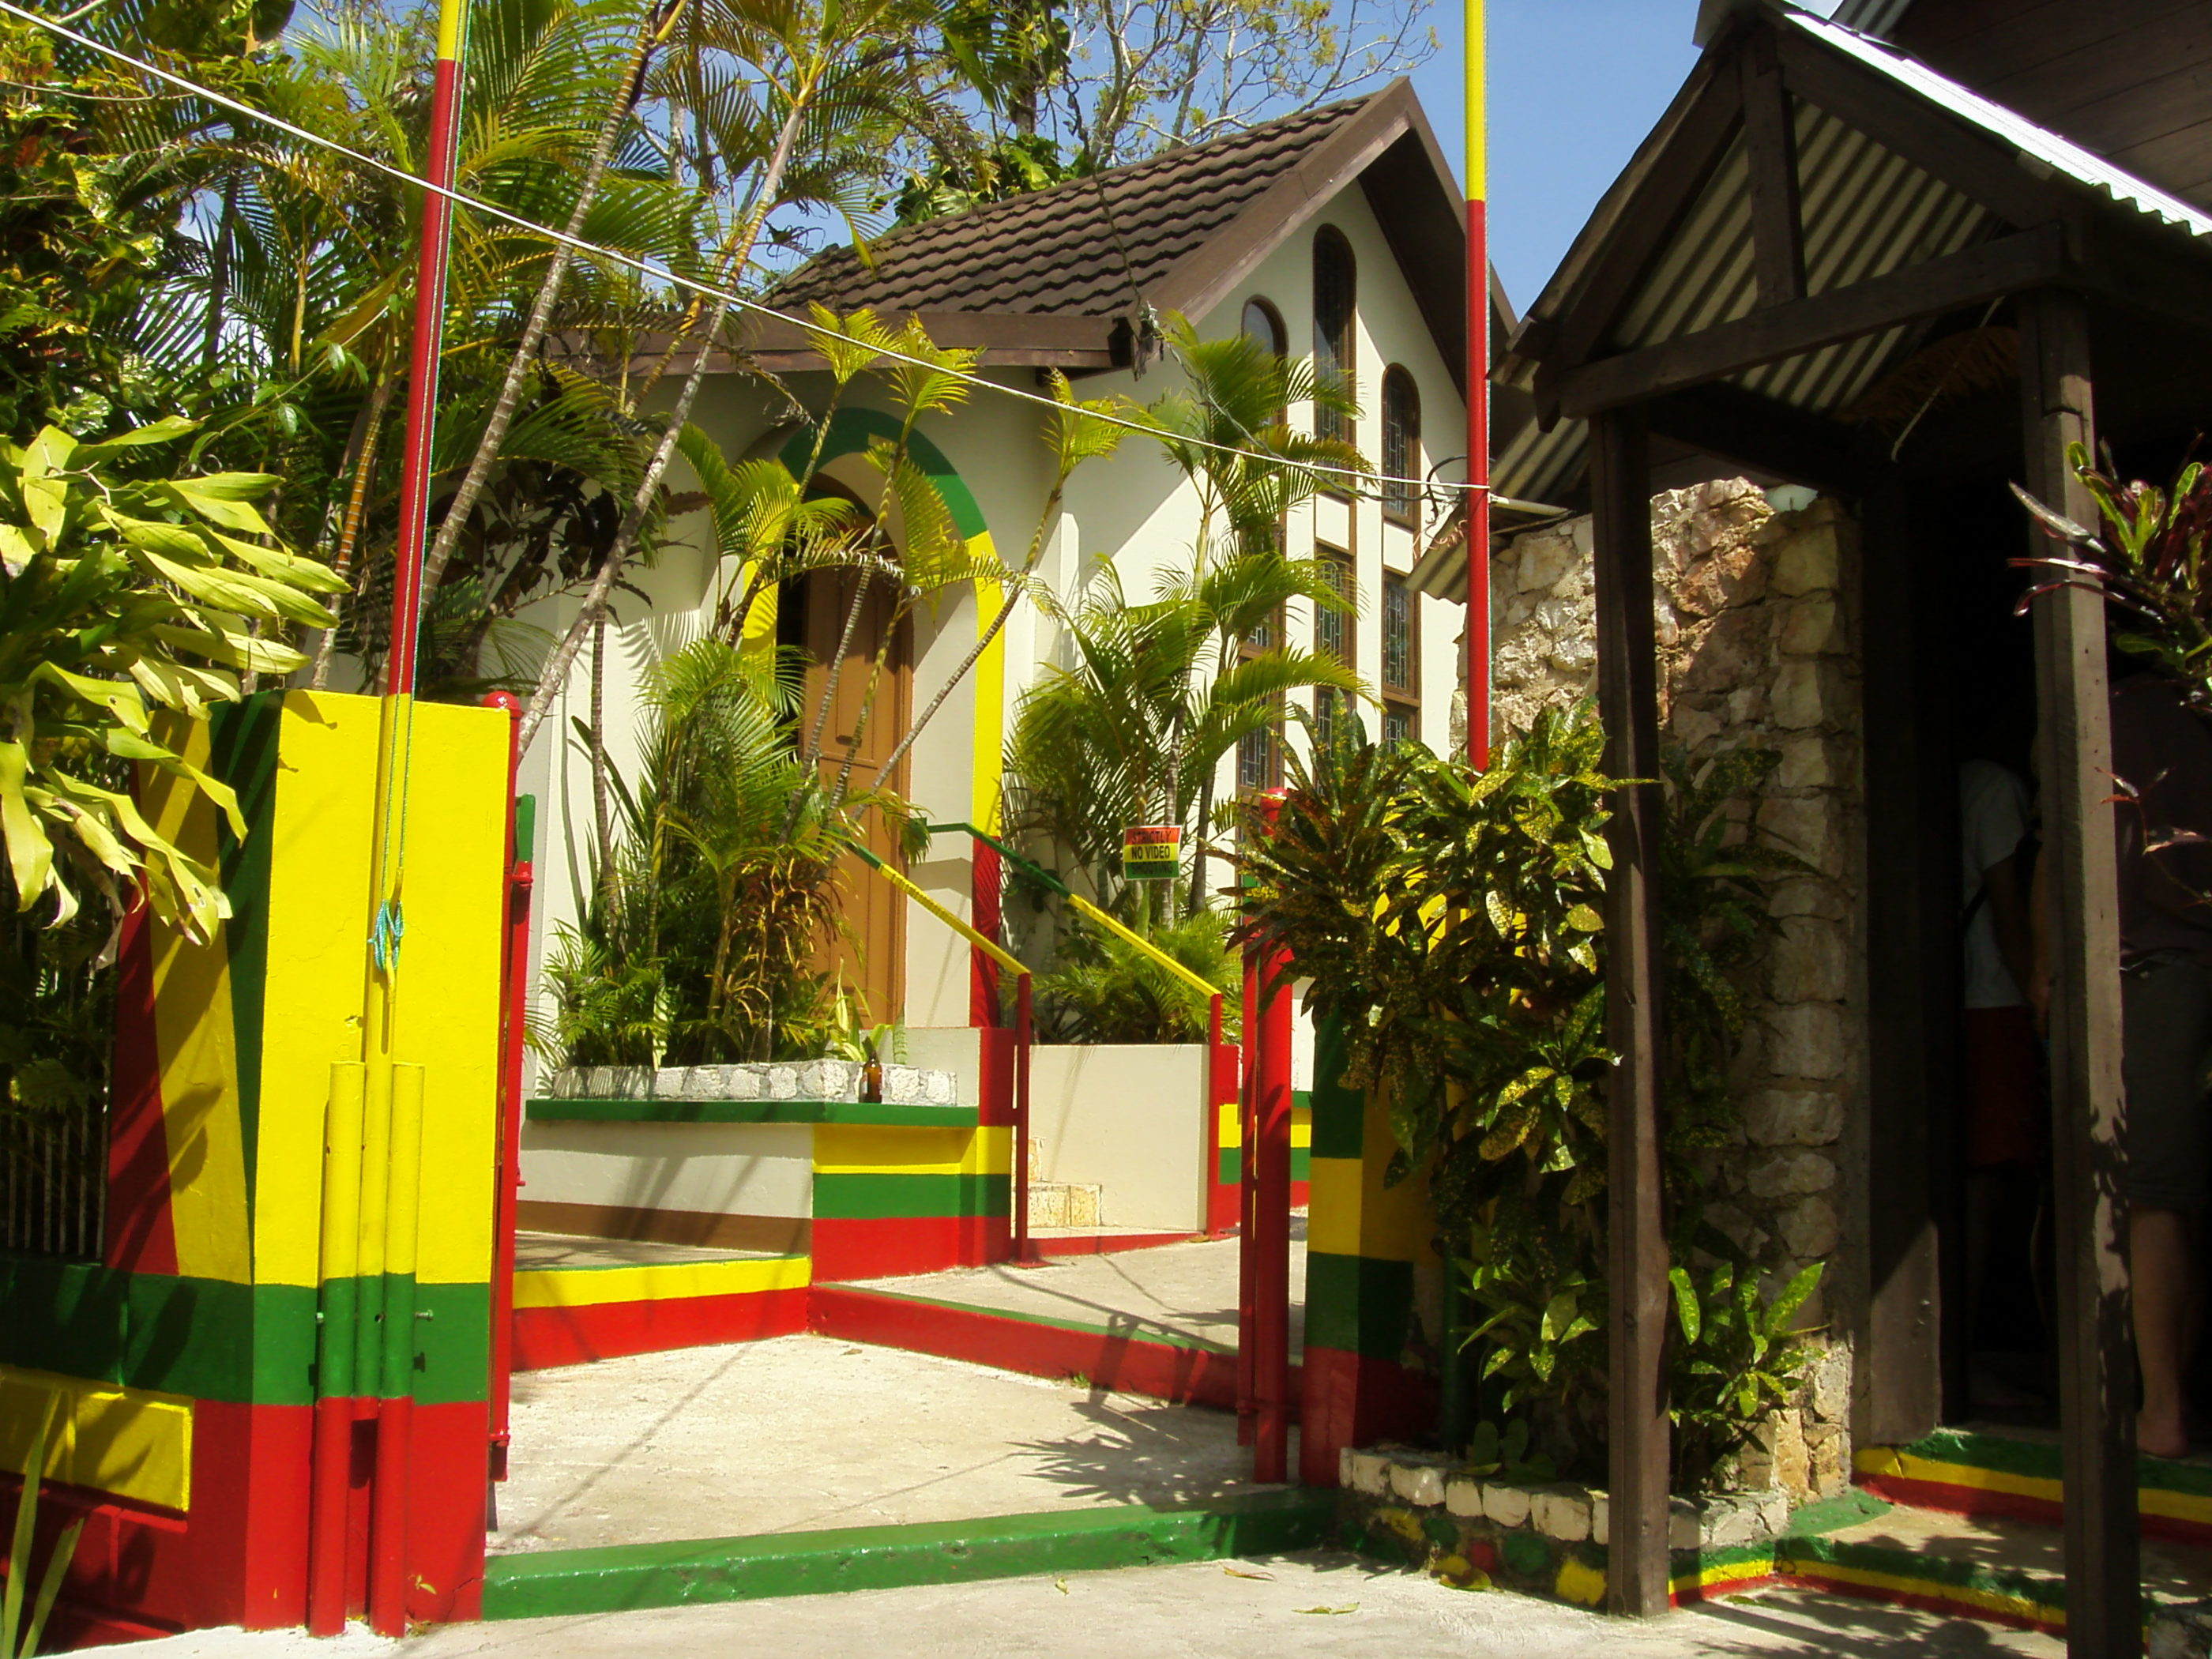 The exterior, with red, yellow and green stripe accents on poles, stairs and gates, to the Bob Marley Mausoleum.